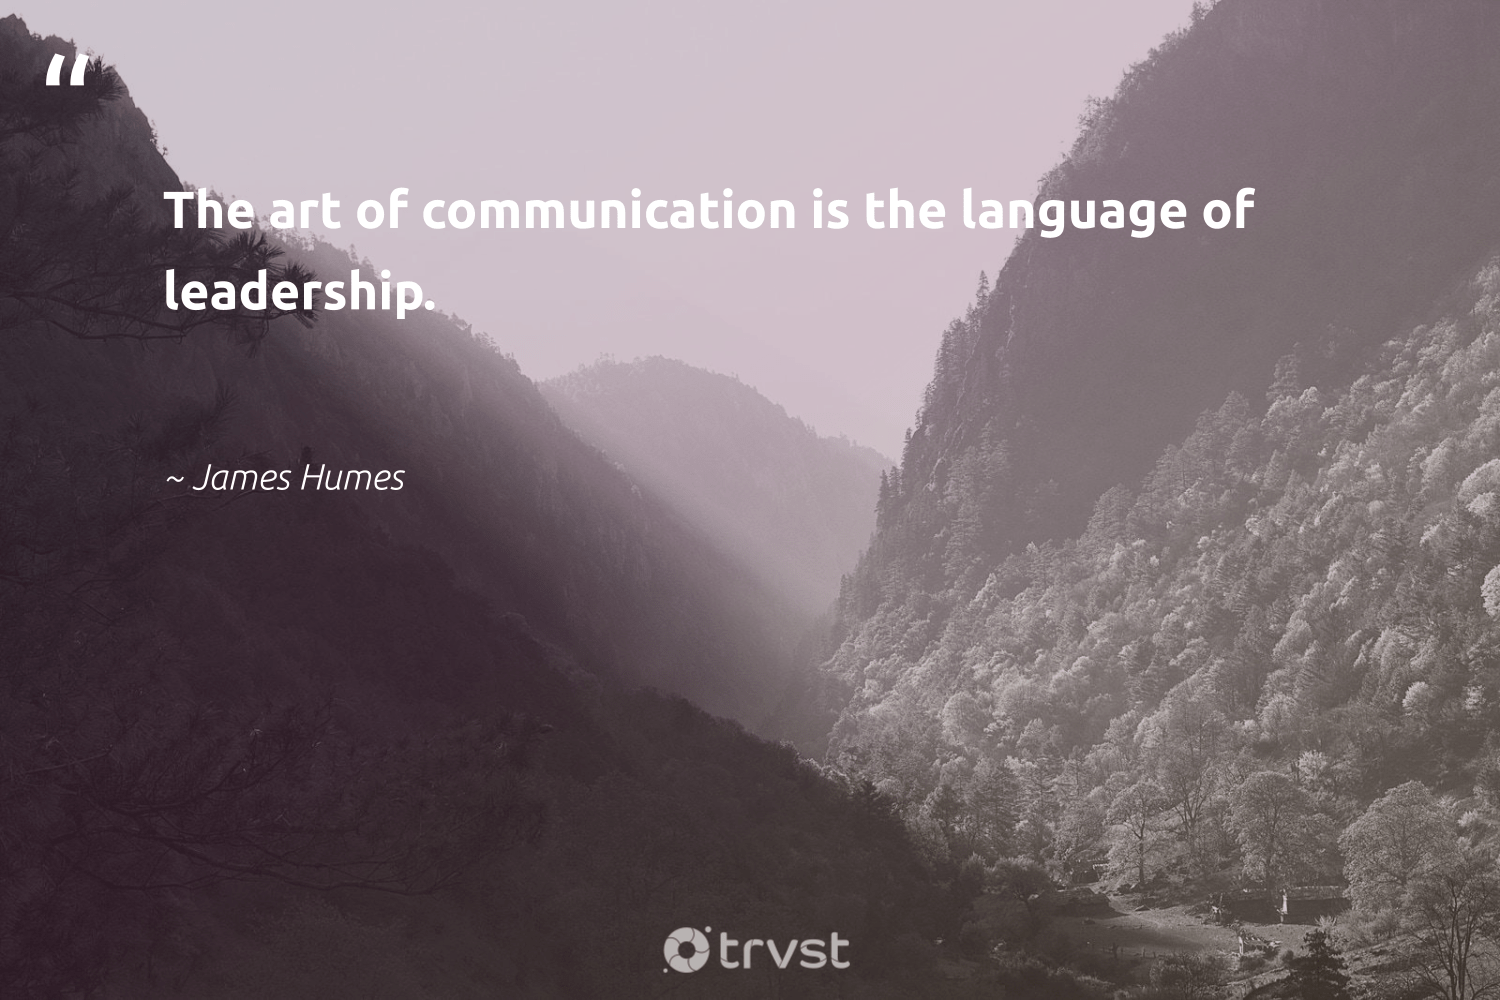 """The art of communication is the language of leadership.""  - James Humes #trvst #quotes #leadership #leadershipqualities #begreat #nevergiveup #ecoconscious #leadershipskills #softskills #futureofwork #gogreen #leadershipdevelopment"